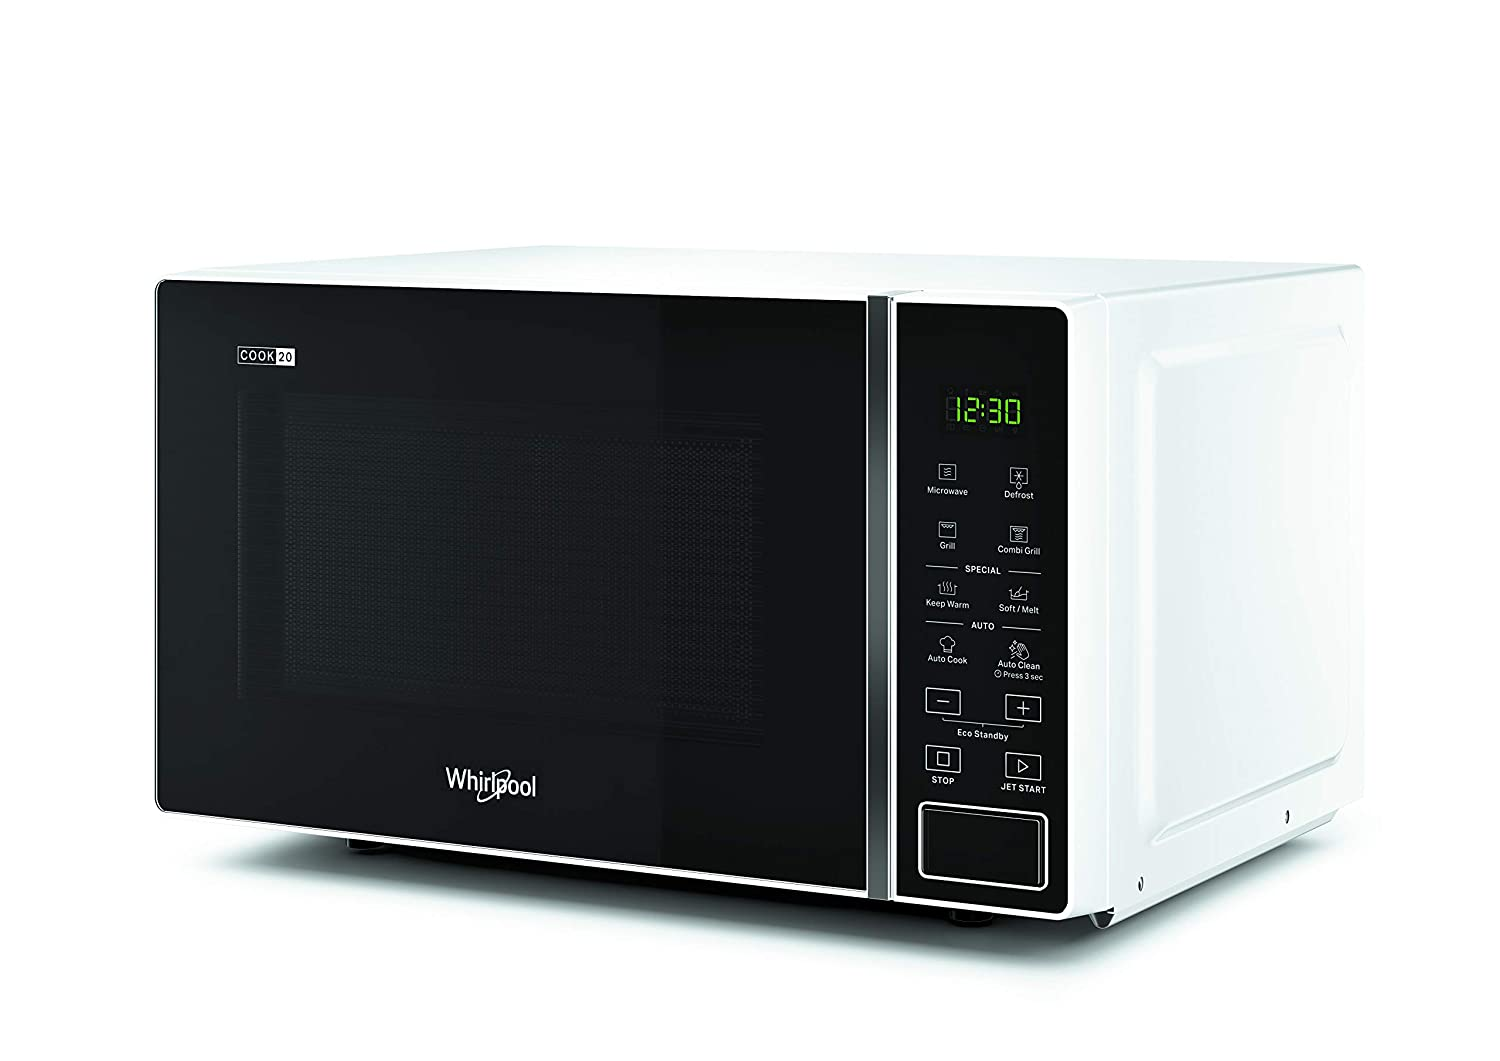 Whirlpool MWP 203 W - Horno microondas 20 litros blanco con grill ...